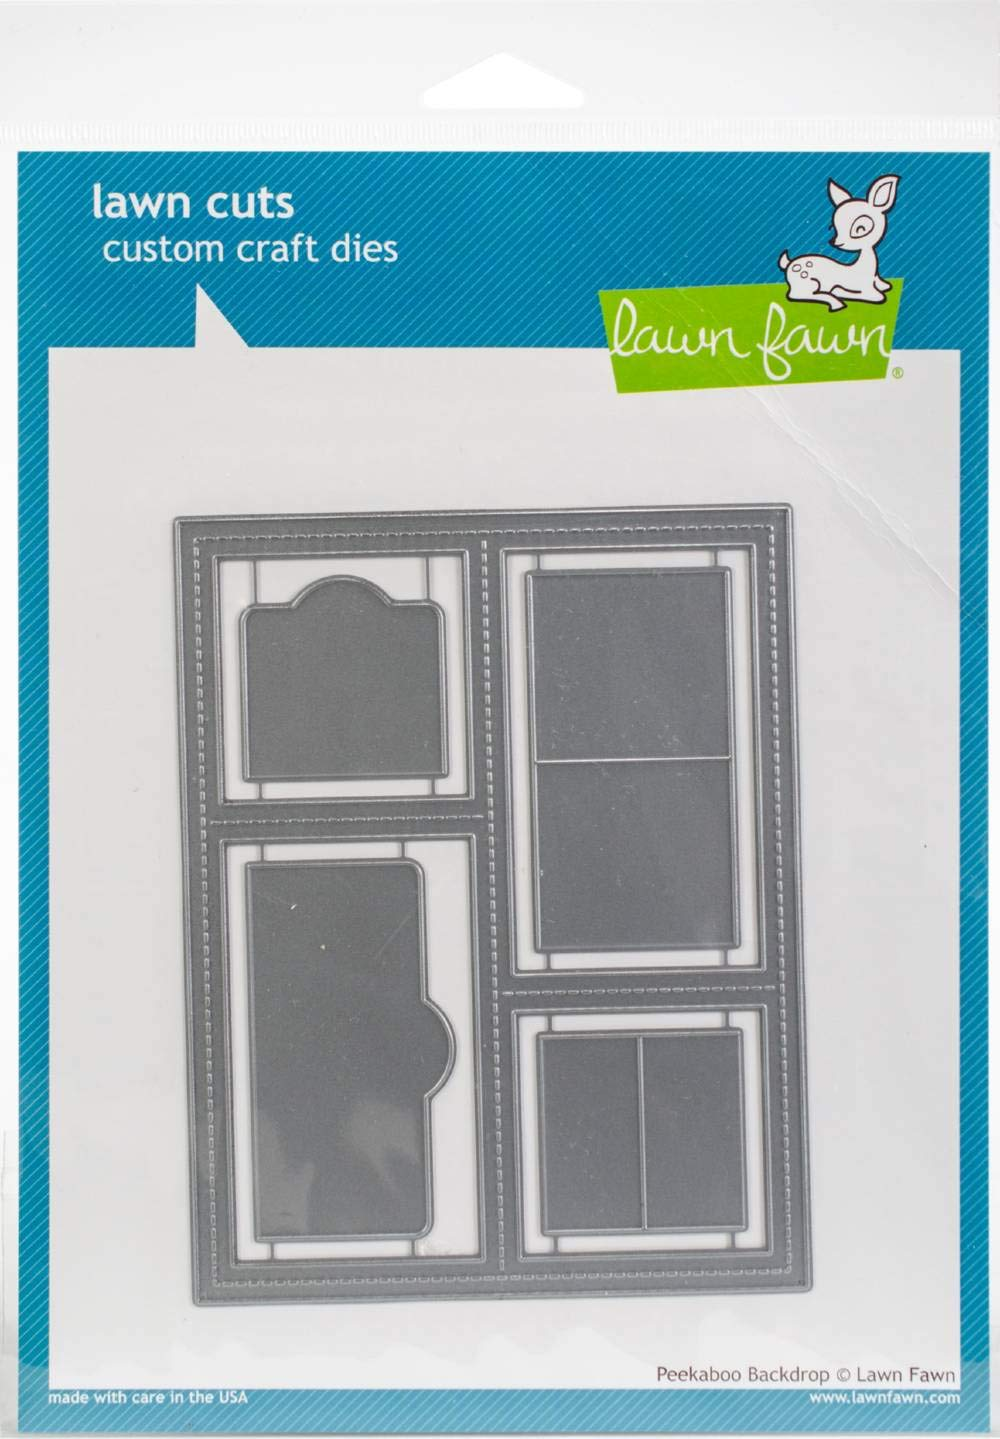 Lawn Fawn Lawn Cuts Custom Craft Die LF1626 Peekaboo Backdrop